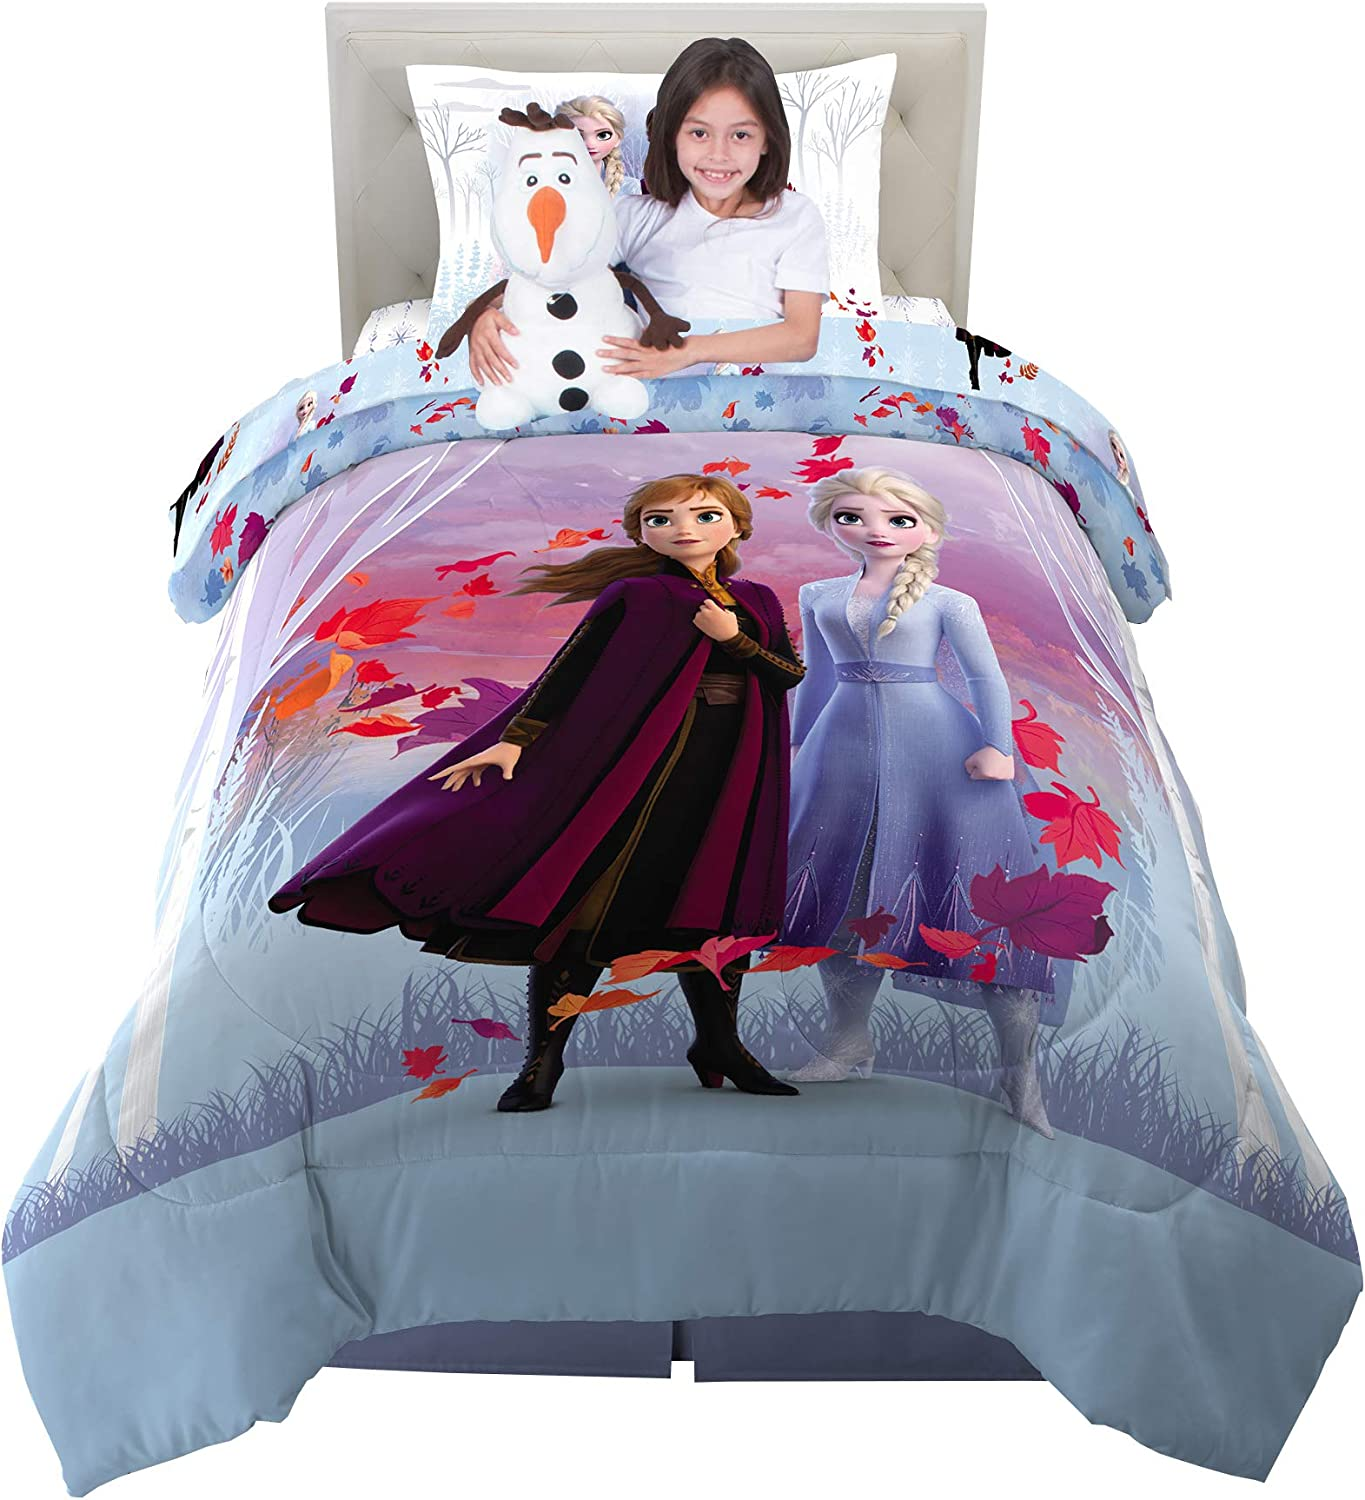 Franco Kids Bedding Super Soft Comforter With Sheets And Cuddle Pillow Bedroom Set 5 Piece Twin Size Disney Frozen 2 Home Kitchen